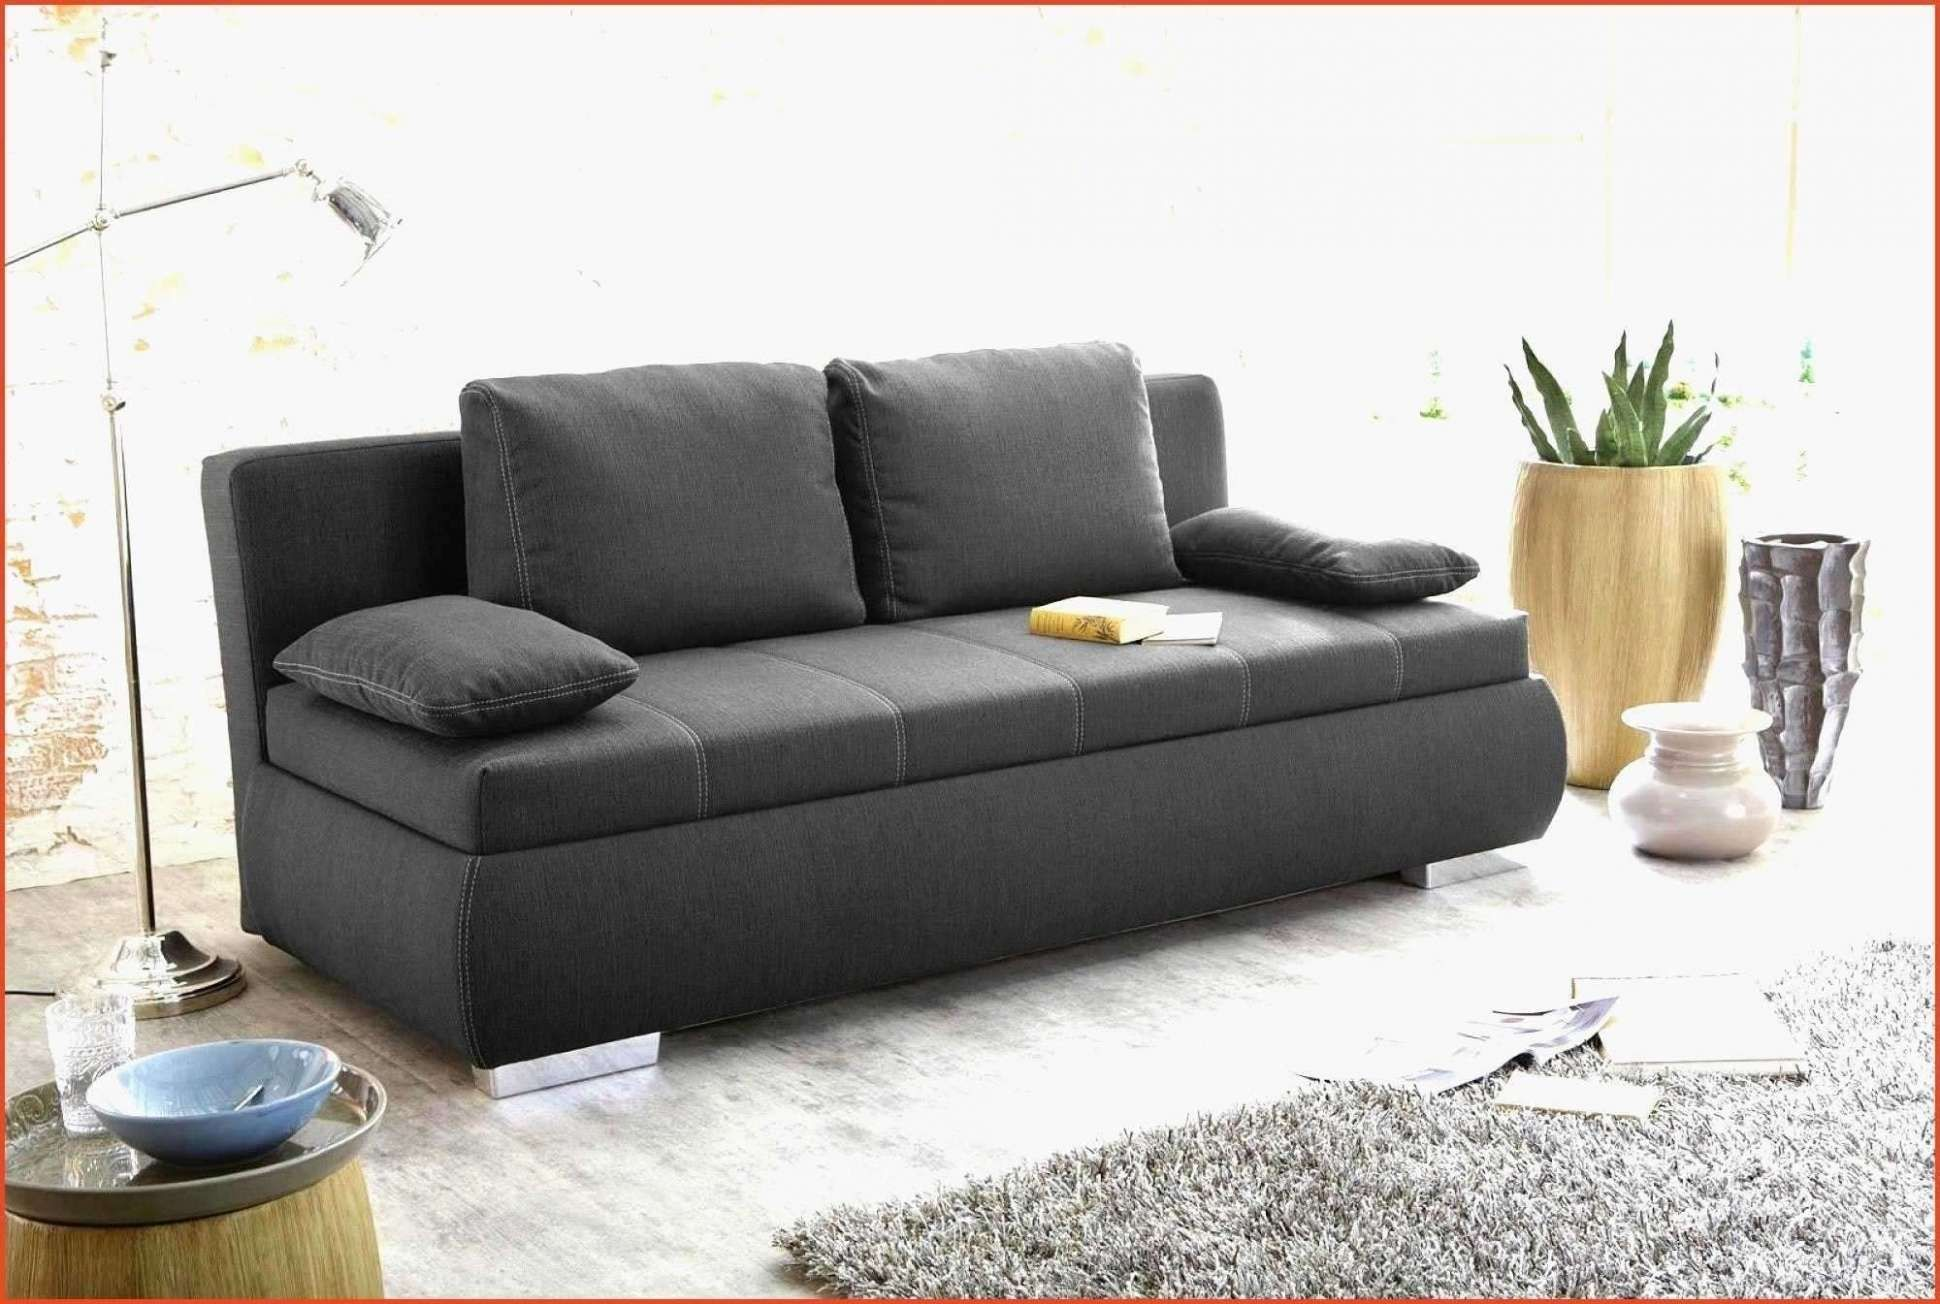 Ecksofa Kaufen Gunstig Sofa Relaxfunktion Gunstig Yct Projekte In 2020 Ikea Living Room Chairs Living Room Sofa Set Sofa Store